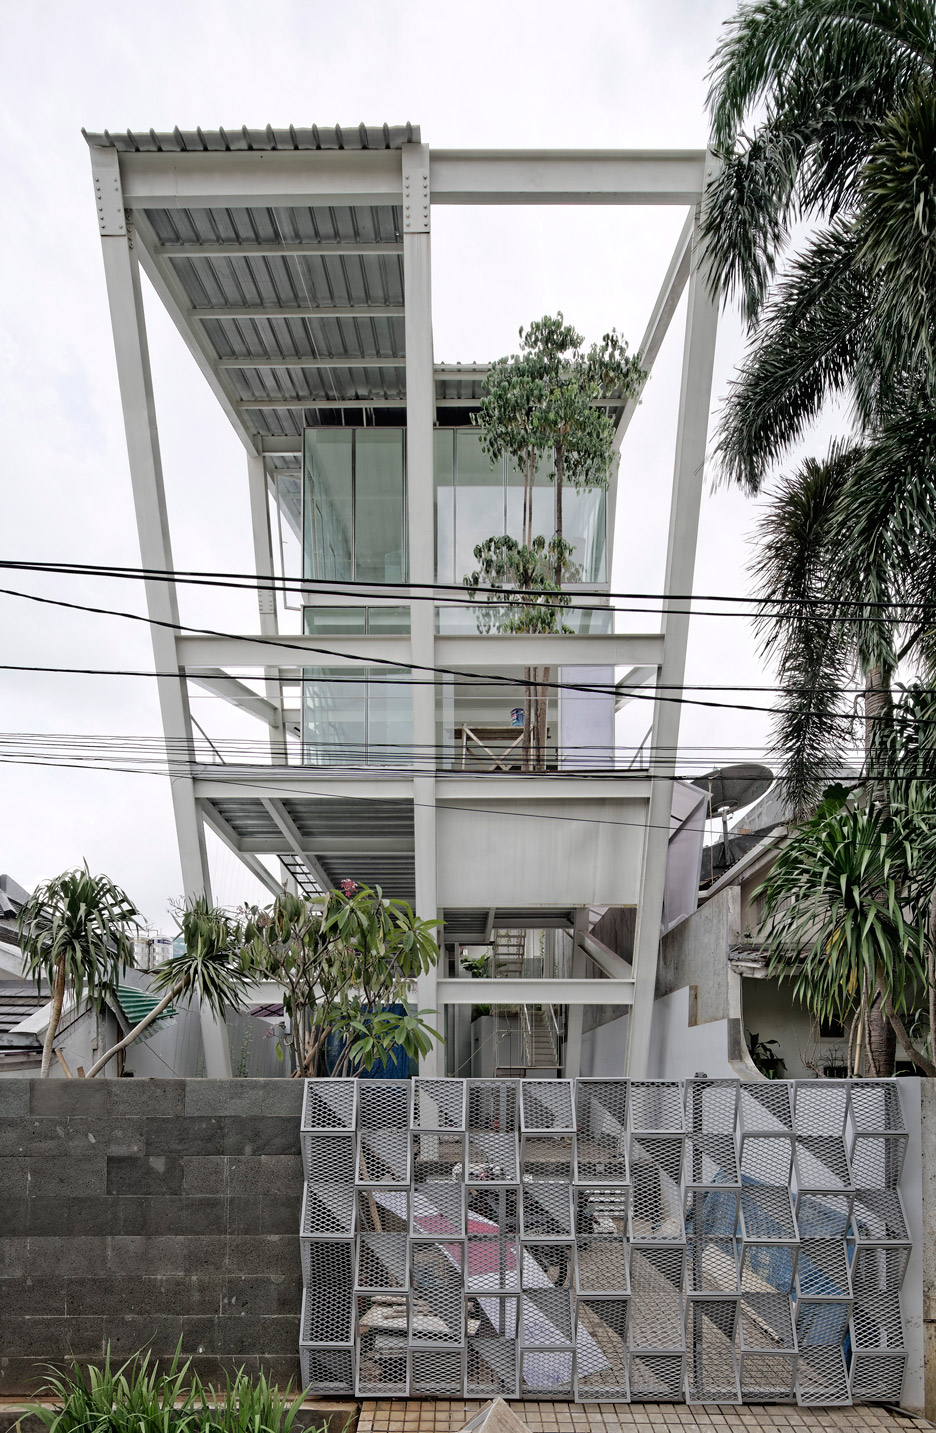 Leaning Rumah Miring House With Minimalist Decor